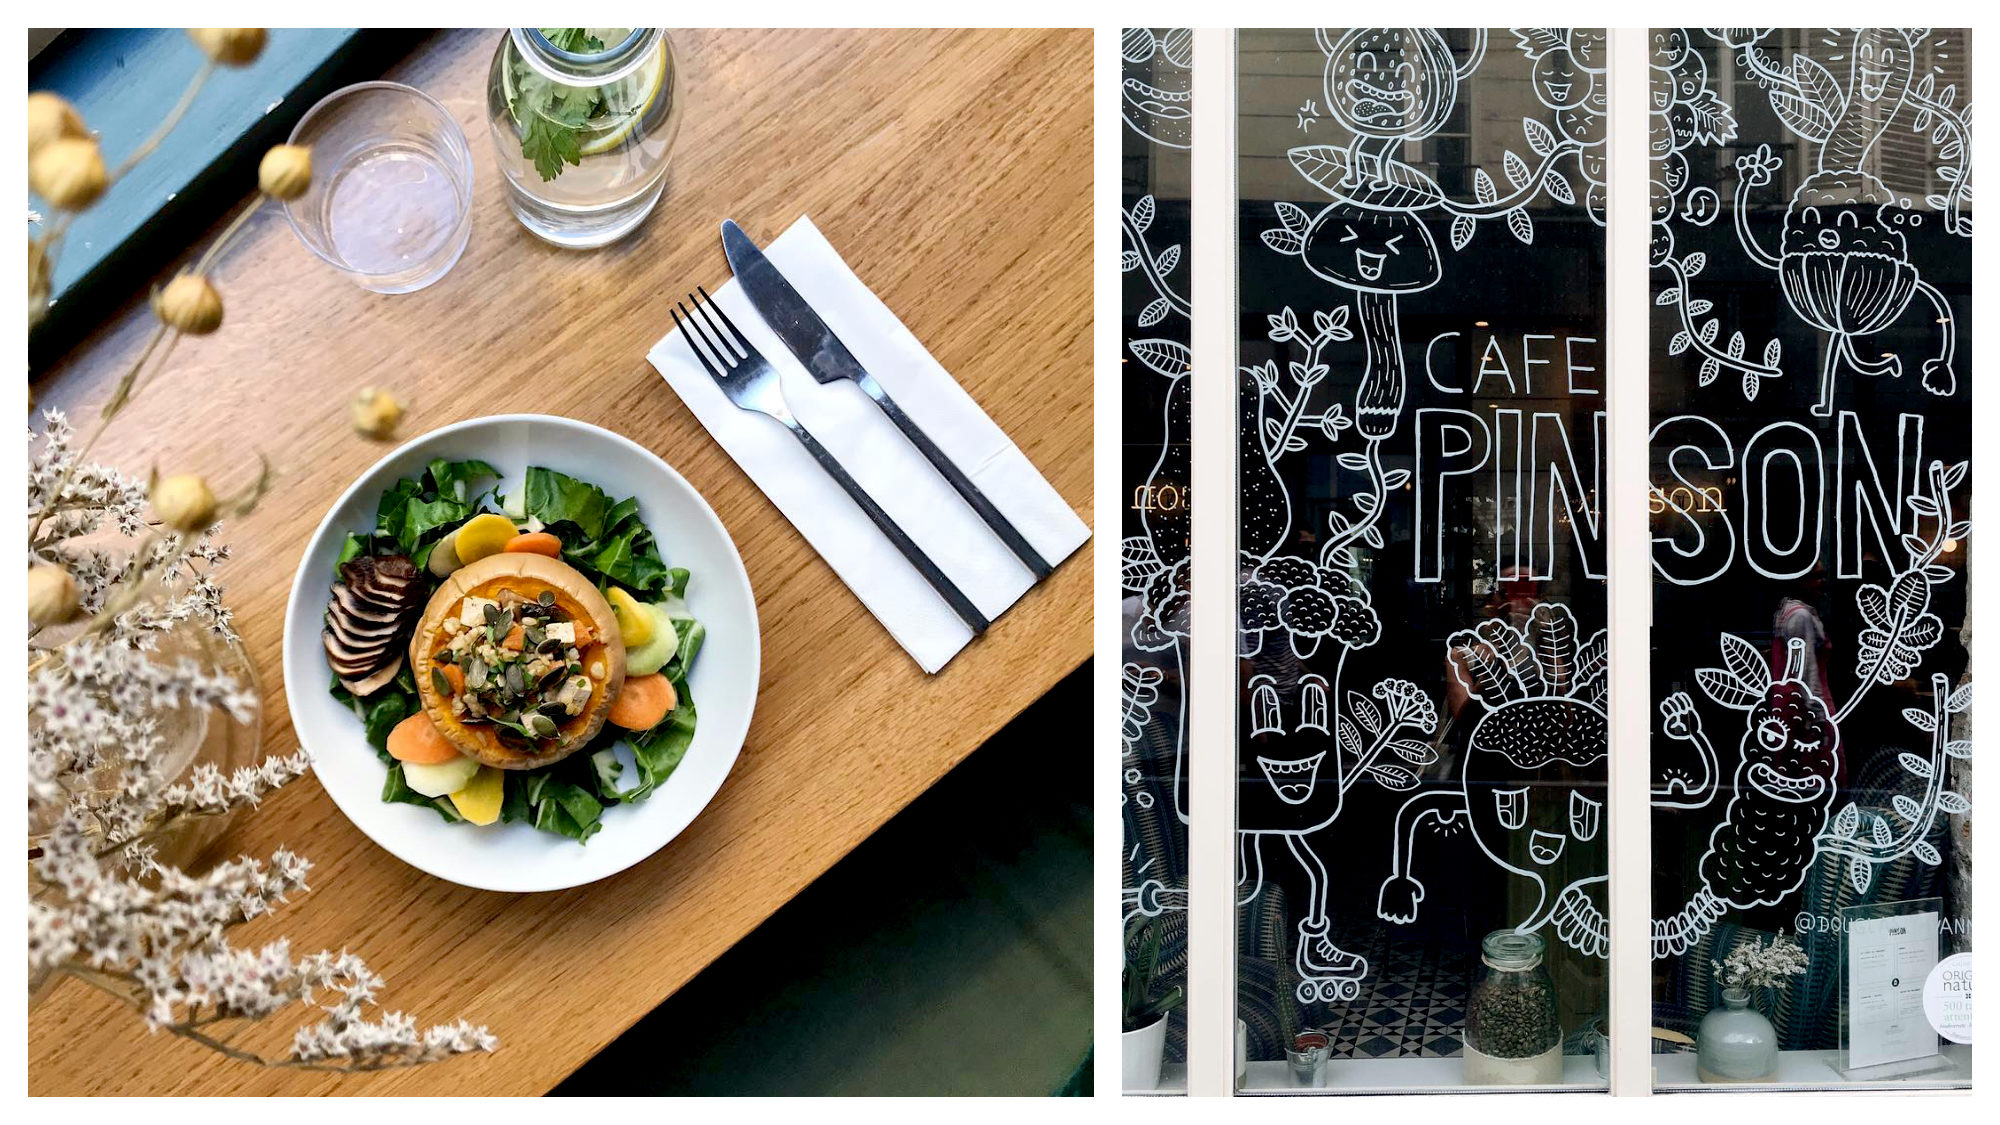 A beautifully presented pumpkin salad with green leaves set down on a wooden table at Café Pinson in Paris (left) and the white cartoon drawings on the café's window (right).